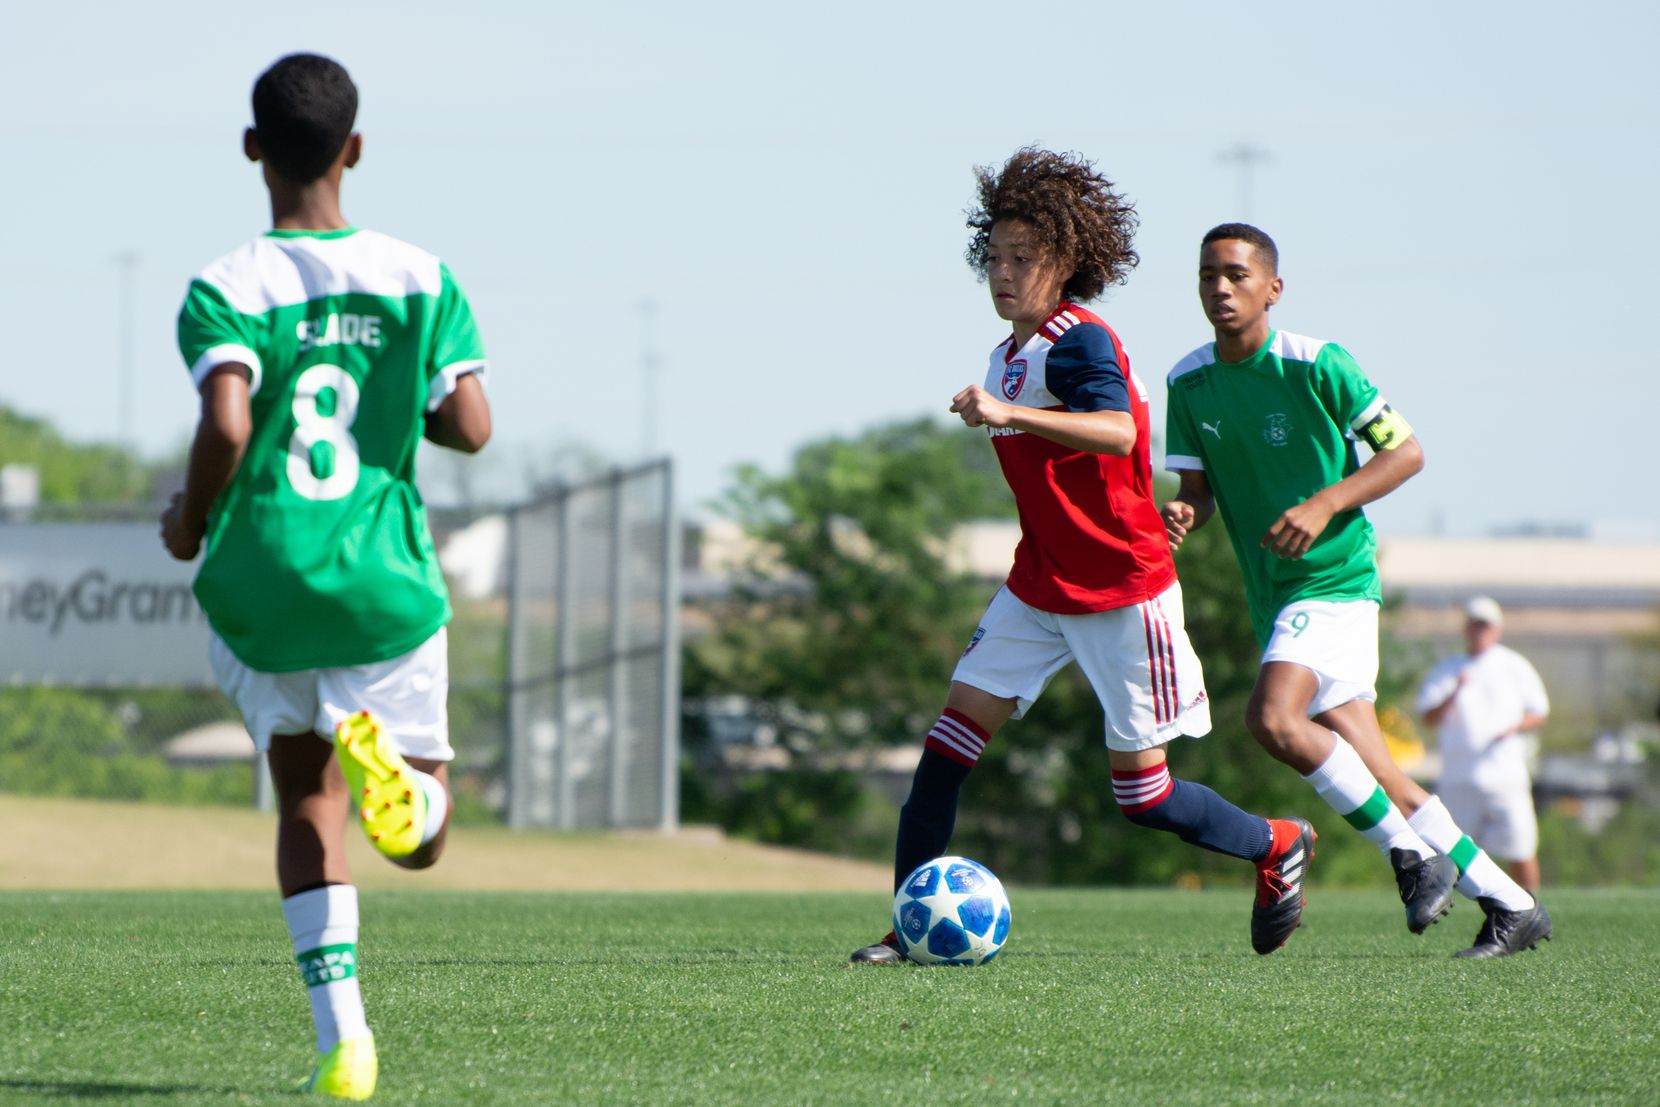 Anthony Ramirez on the ball for the FC Dallas U14s against Ikapa United in the 2019 Dallas Cup.